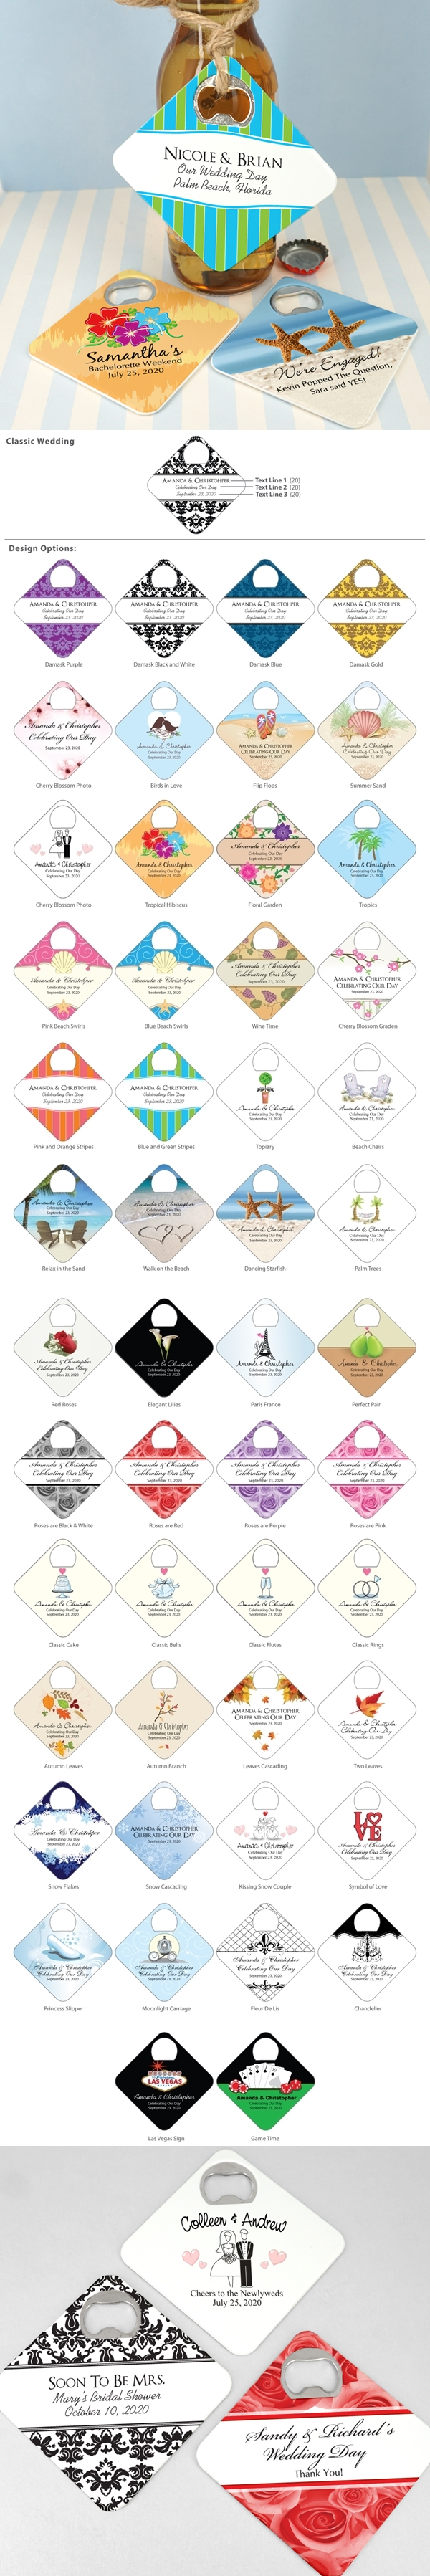 Ducky Days Personalized Square Bottle Opener Coasters (64 Designs)